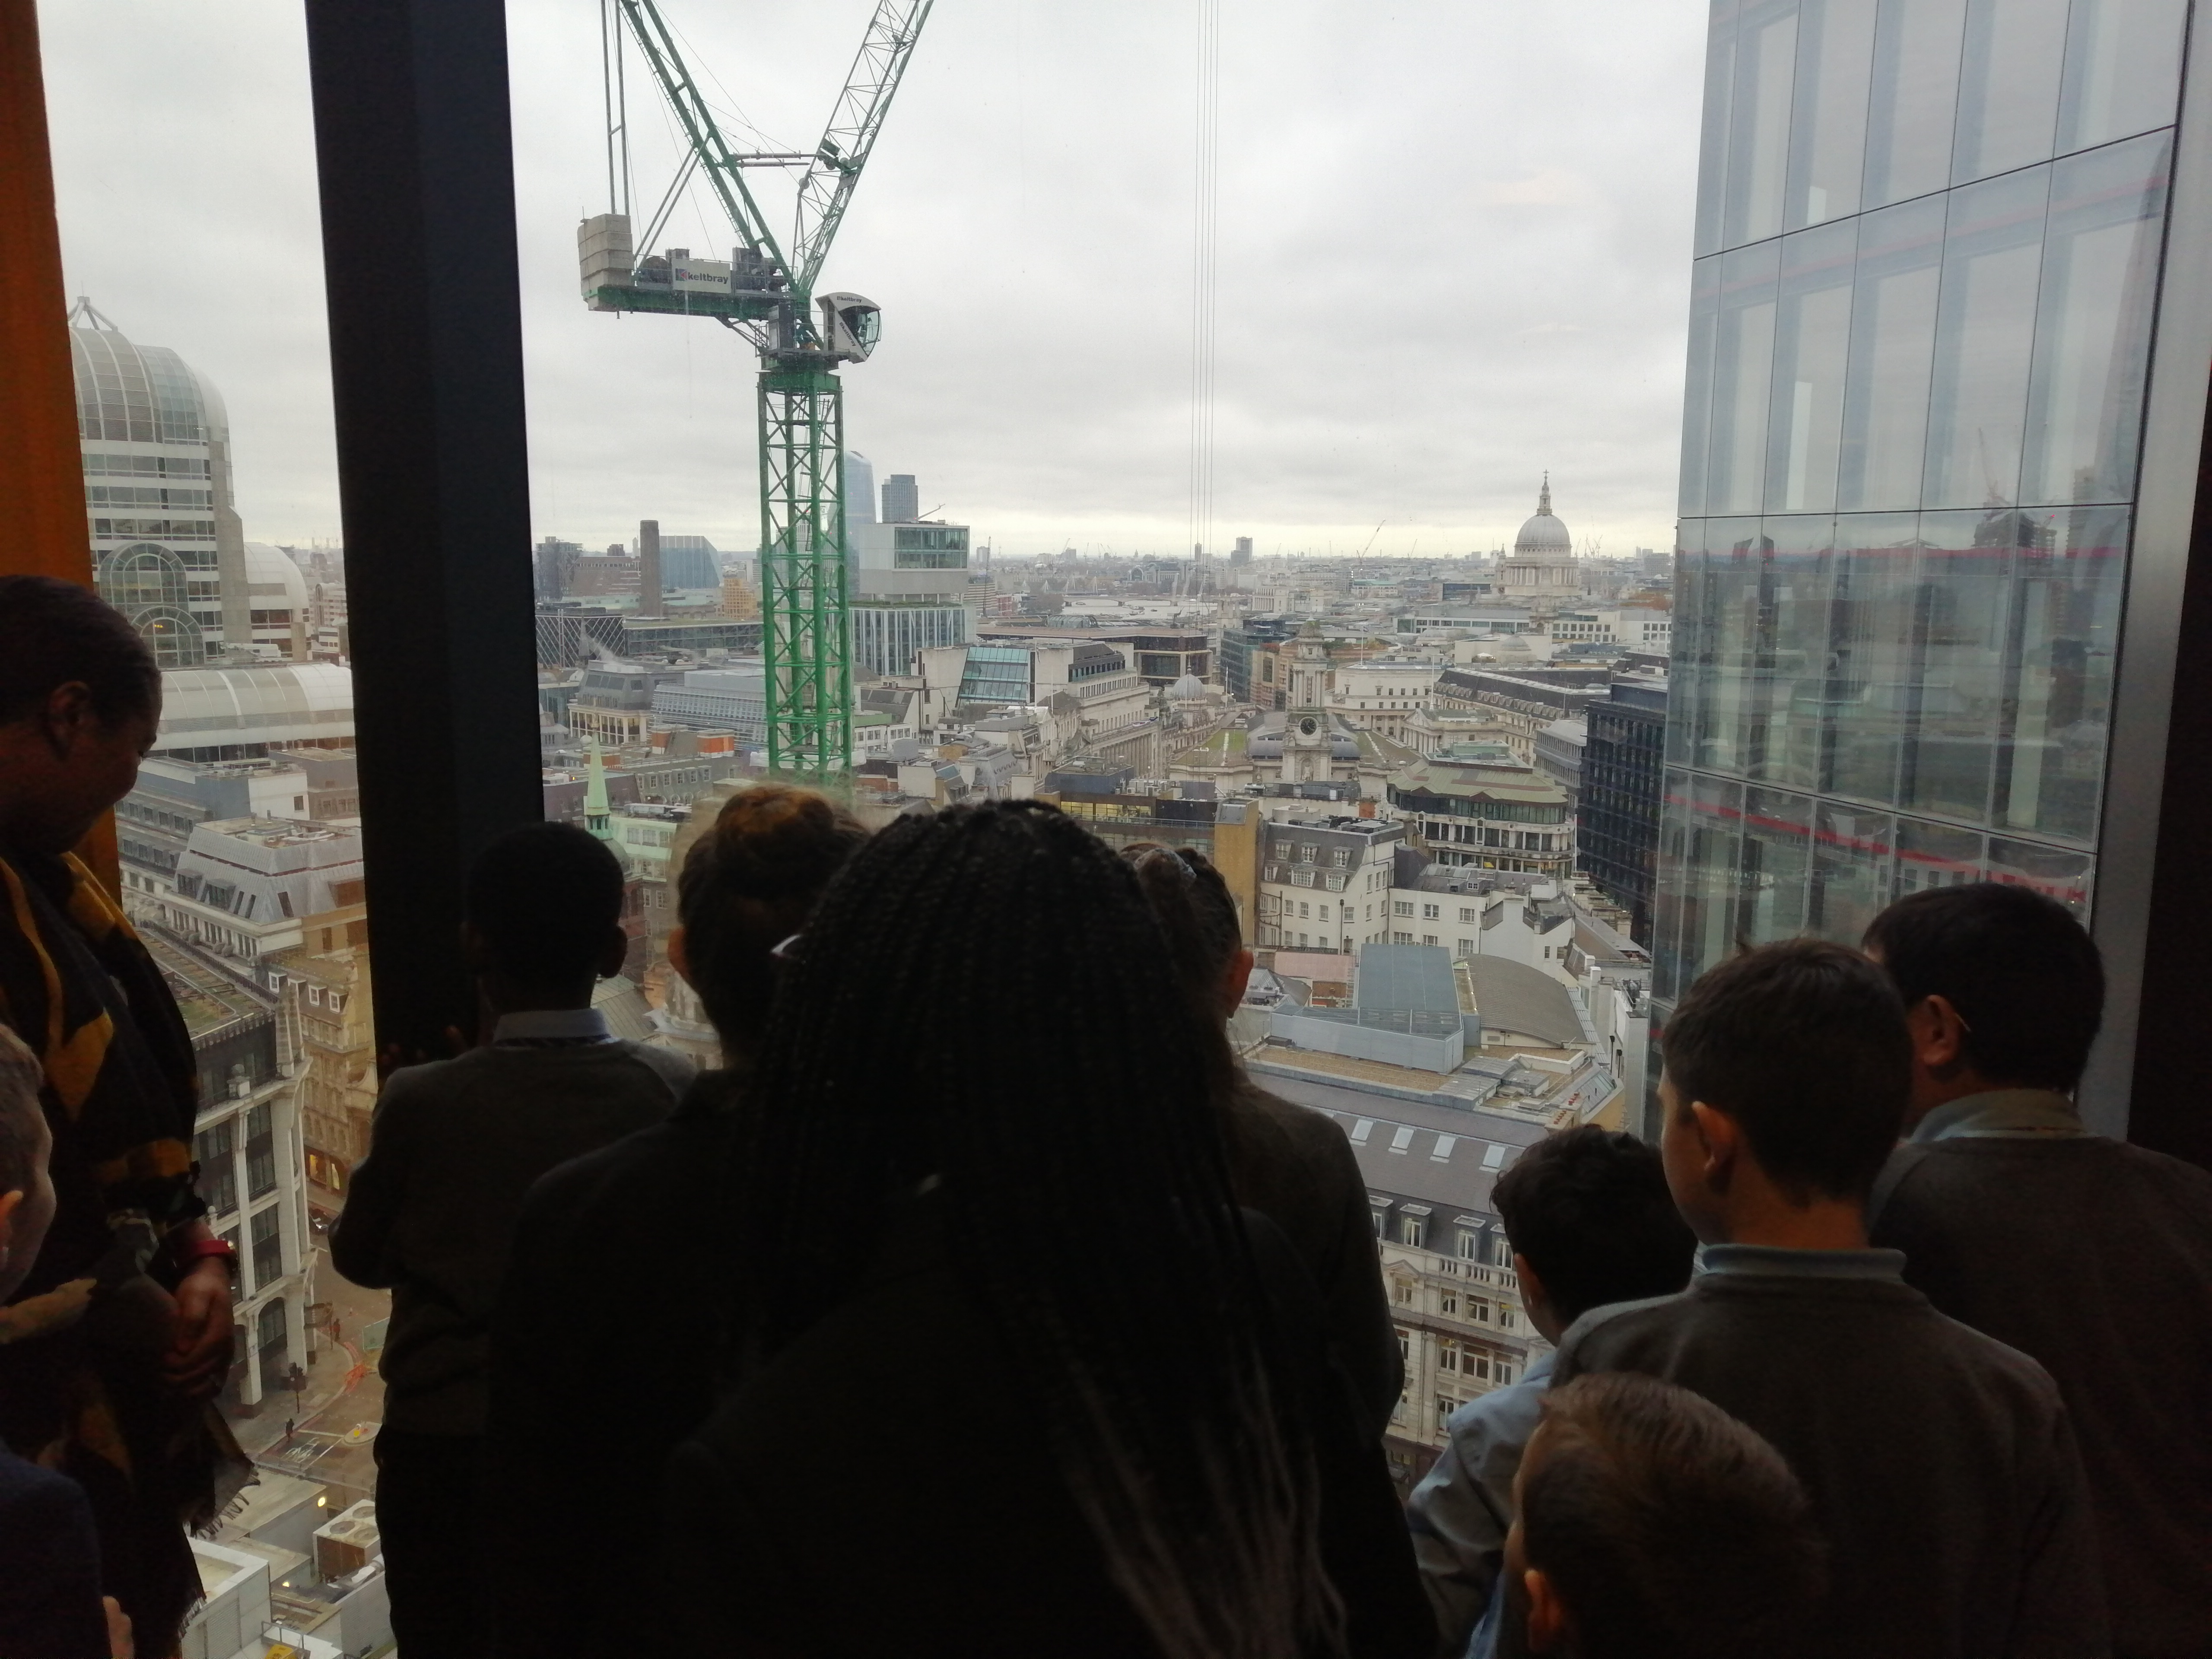 The view from 122 Leadenhall, inspiring children to learn about the financial sector